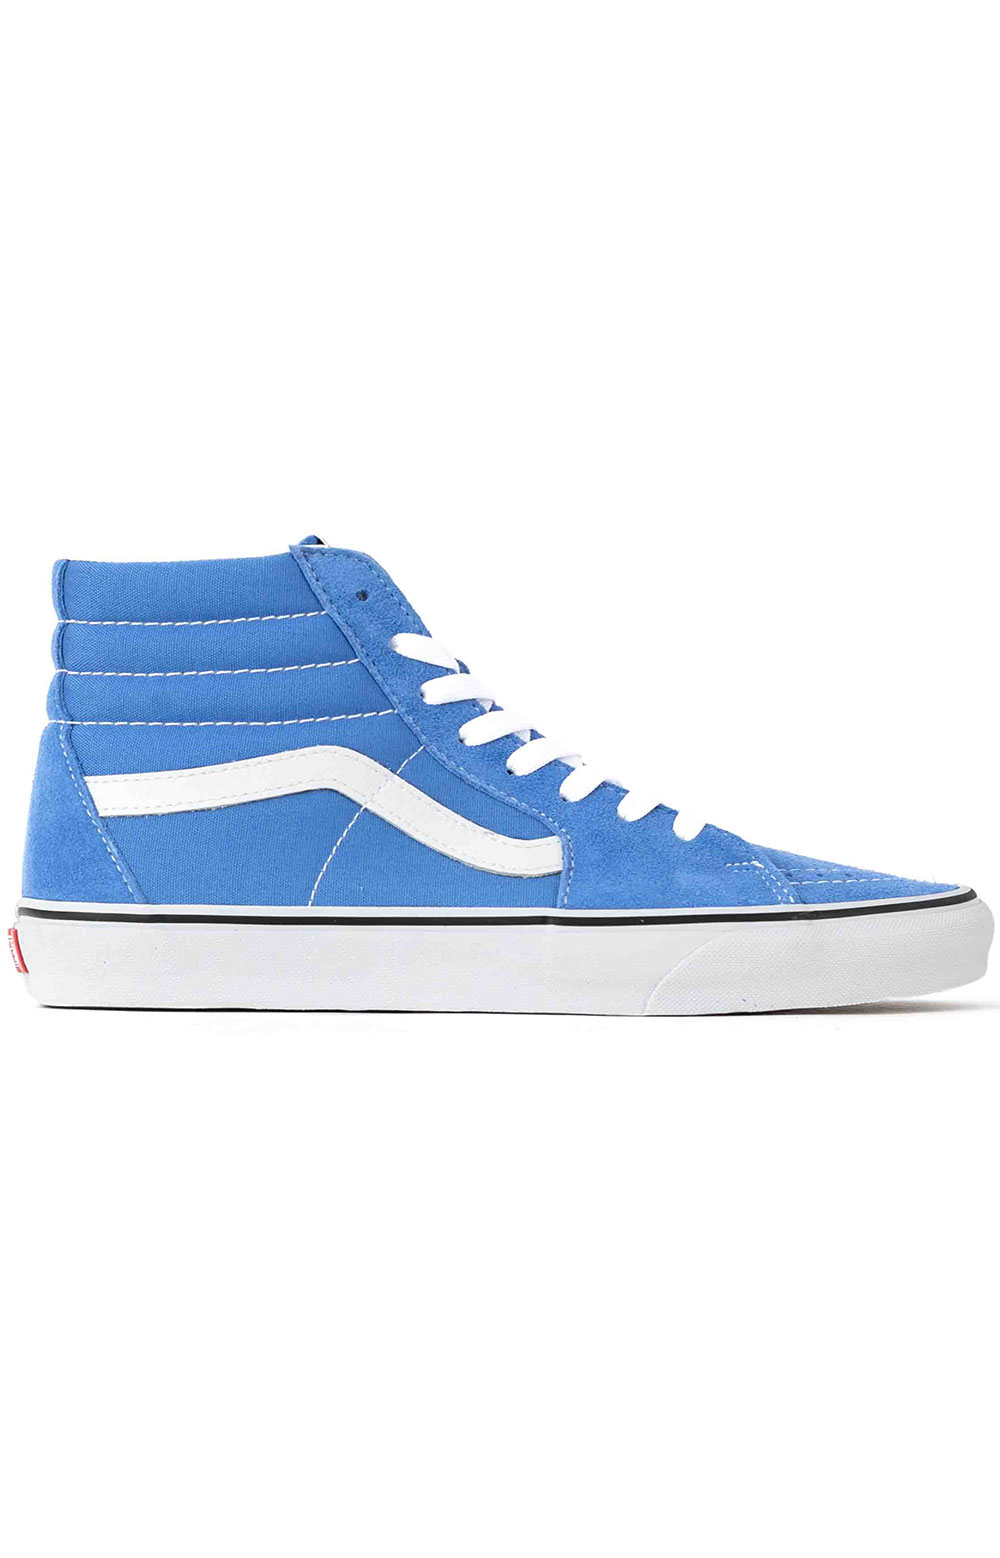 (U3C1UJ) Sk8-Hi Shoes - Nebulas Blue